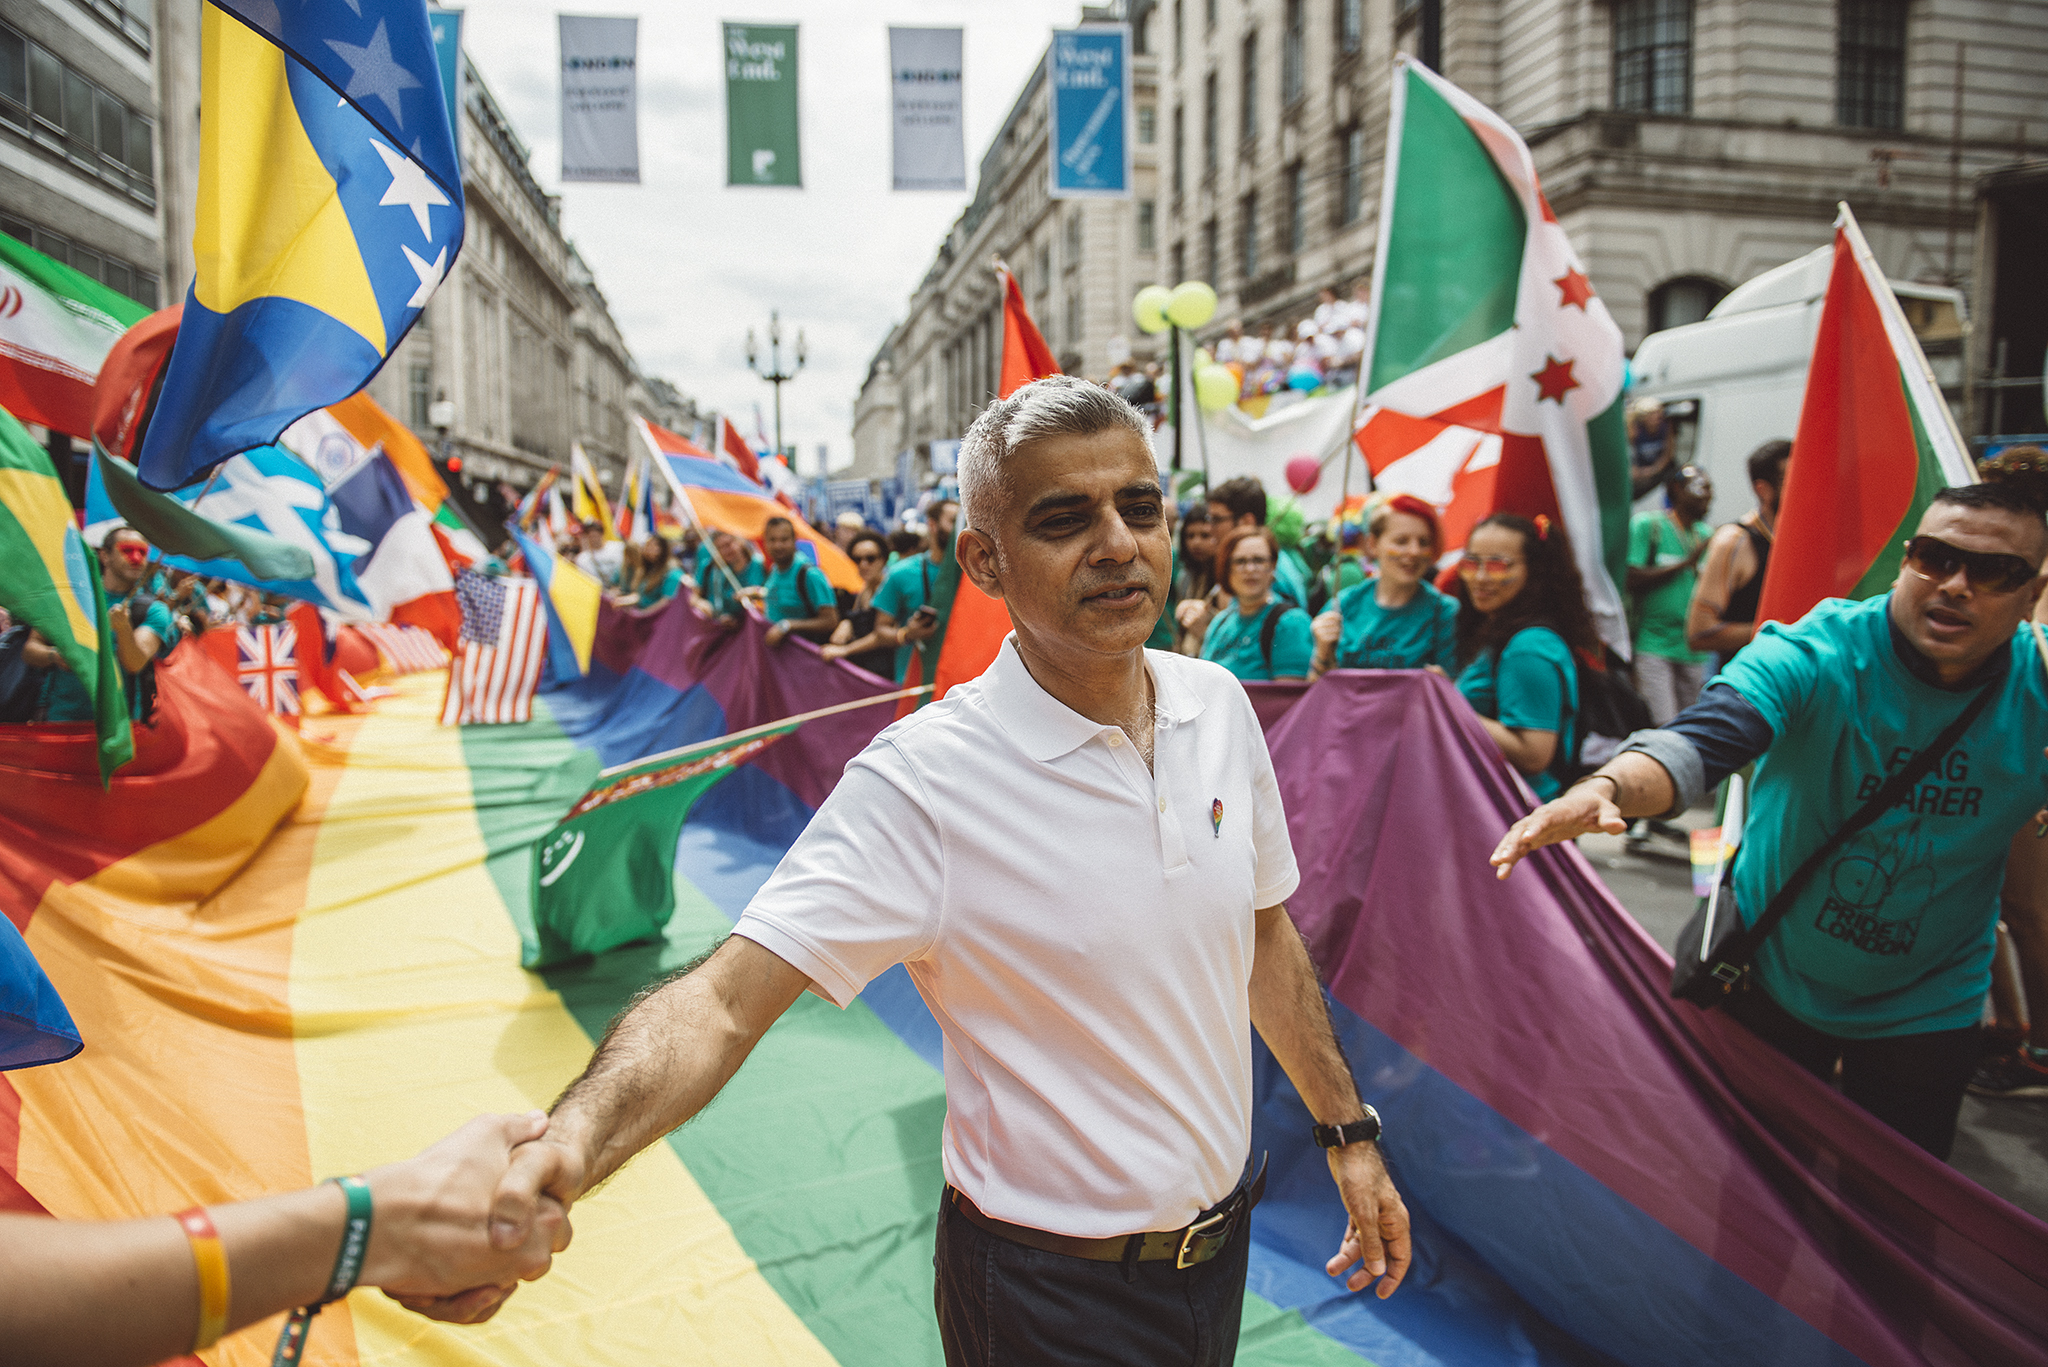 London Mayor Sadiq Khan surronded by cheering participants and colourful flags at the opening of the London Pride parade 2017